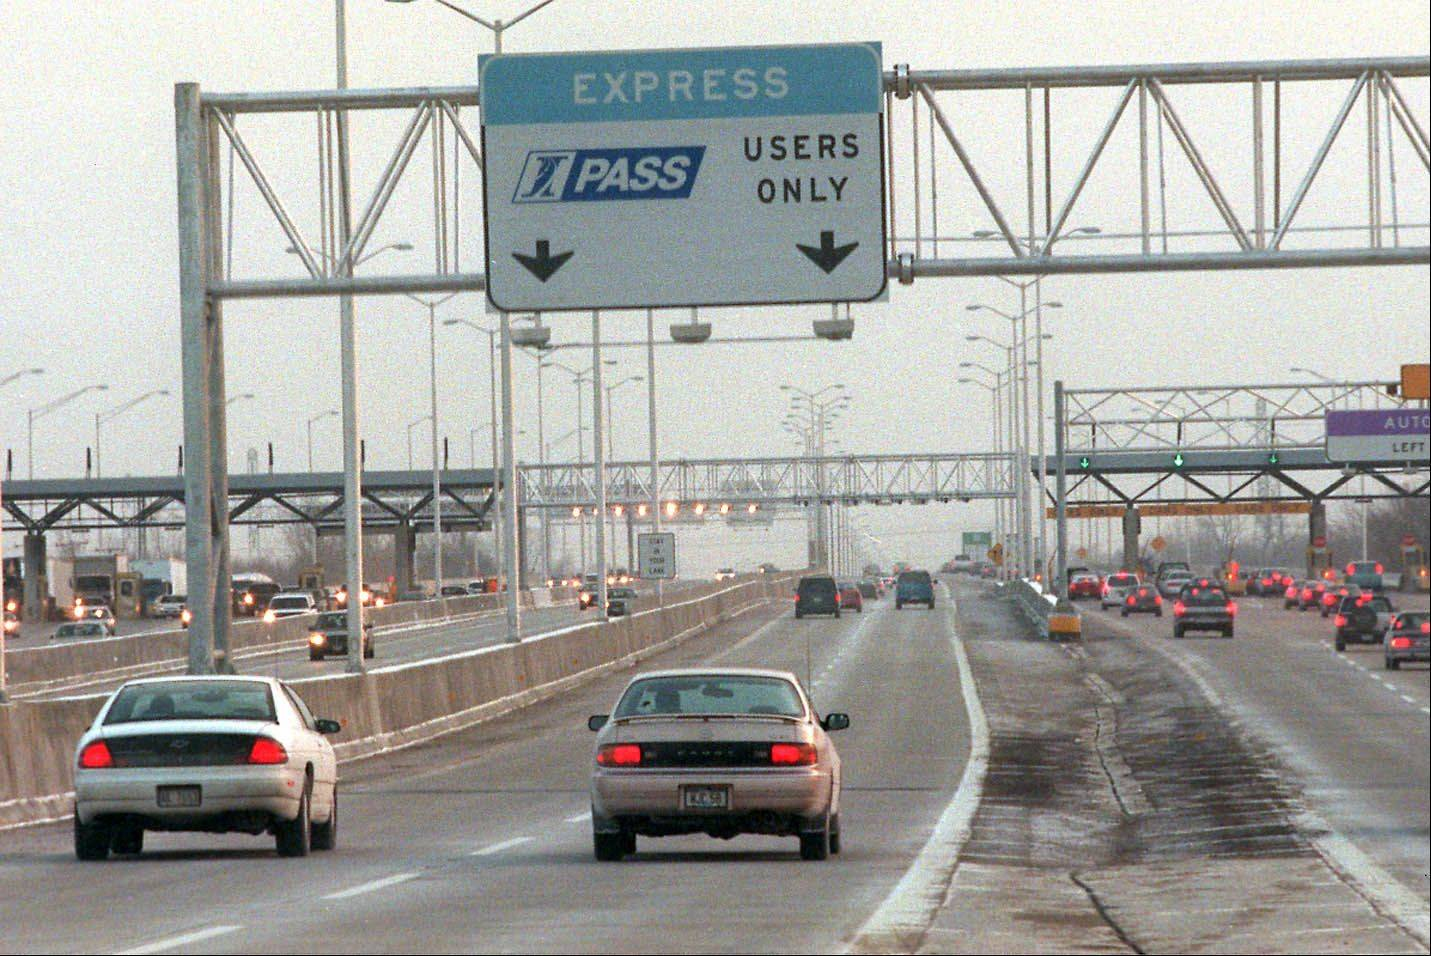 Chatty I-PASS transponders could cost $8-$9